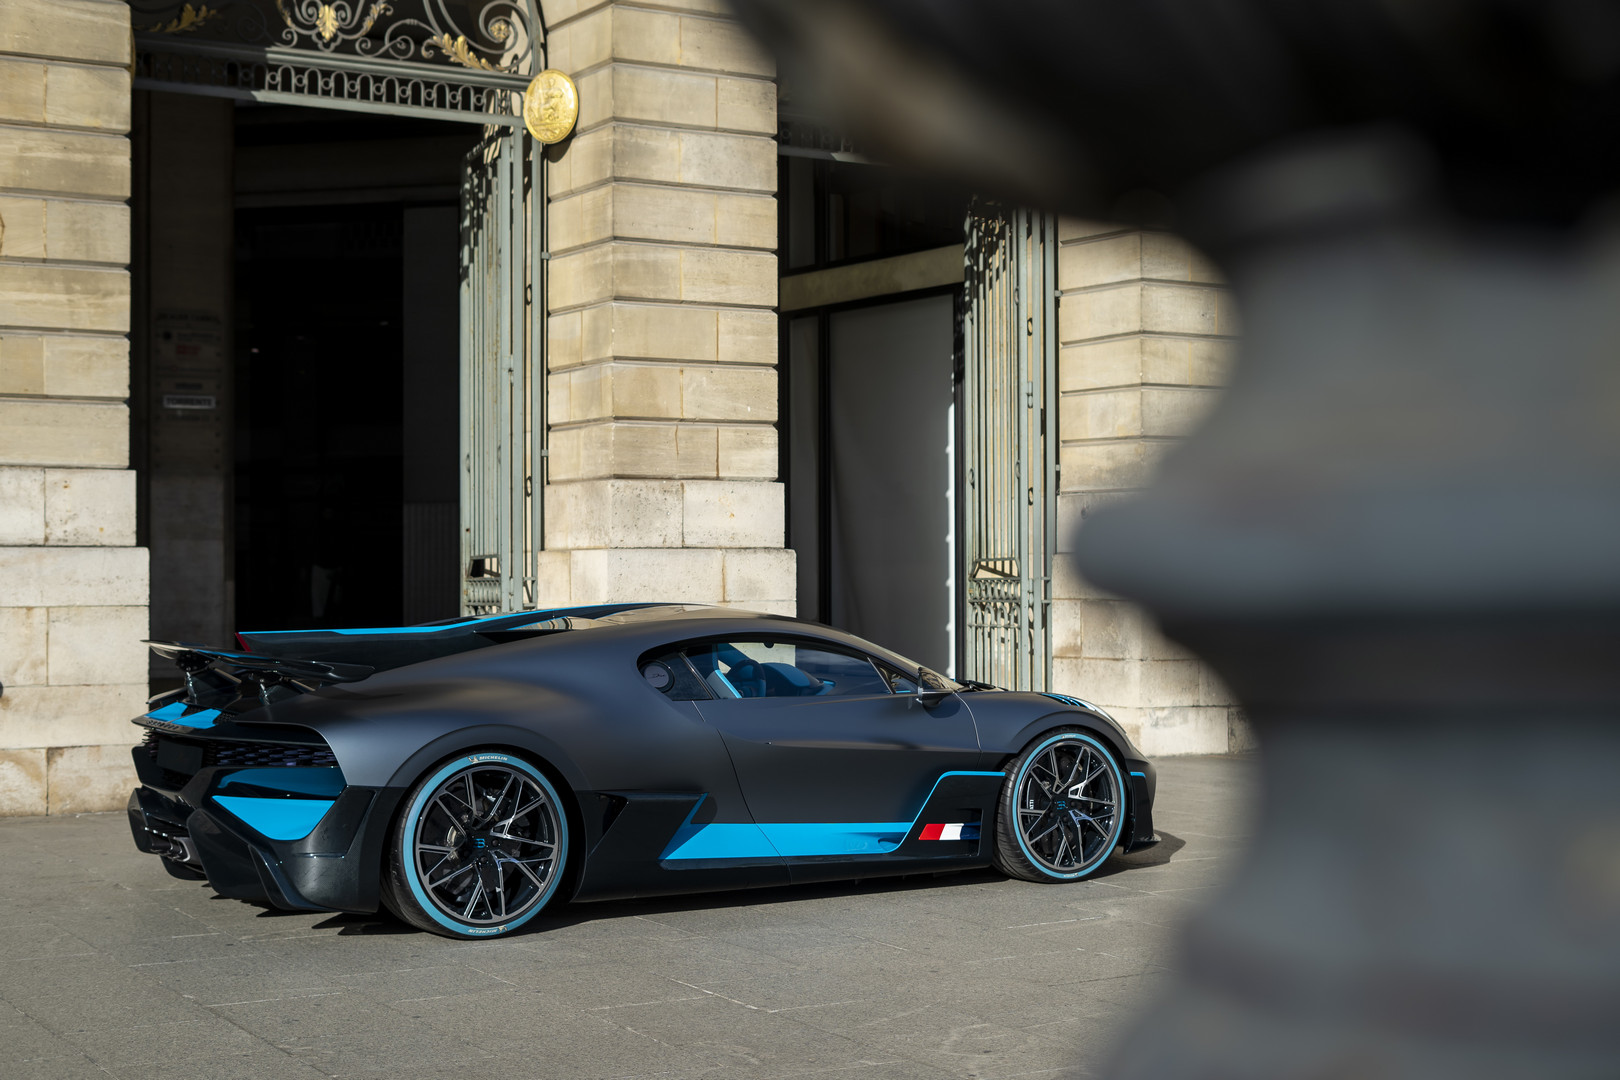 Bugatti Divo Rear Quarter View